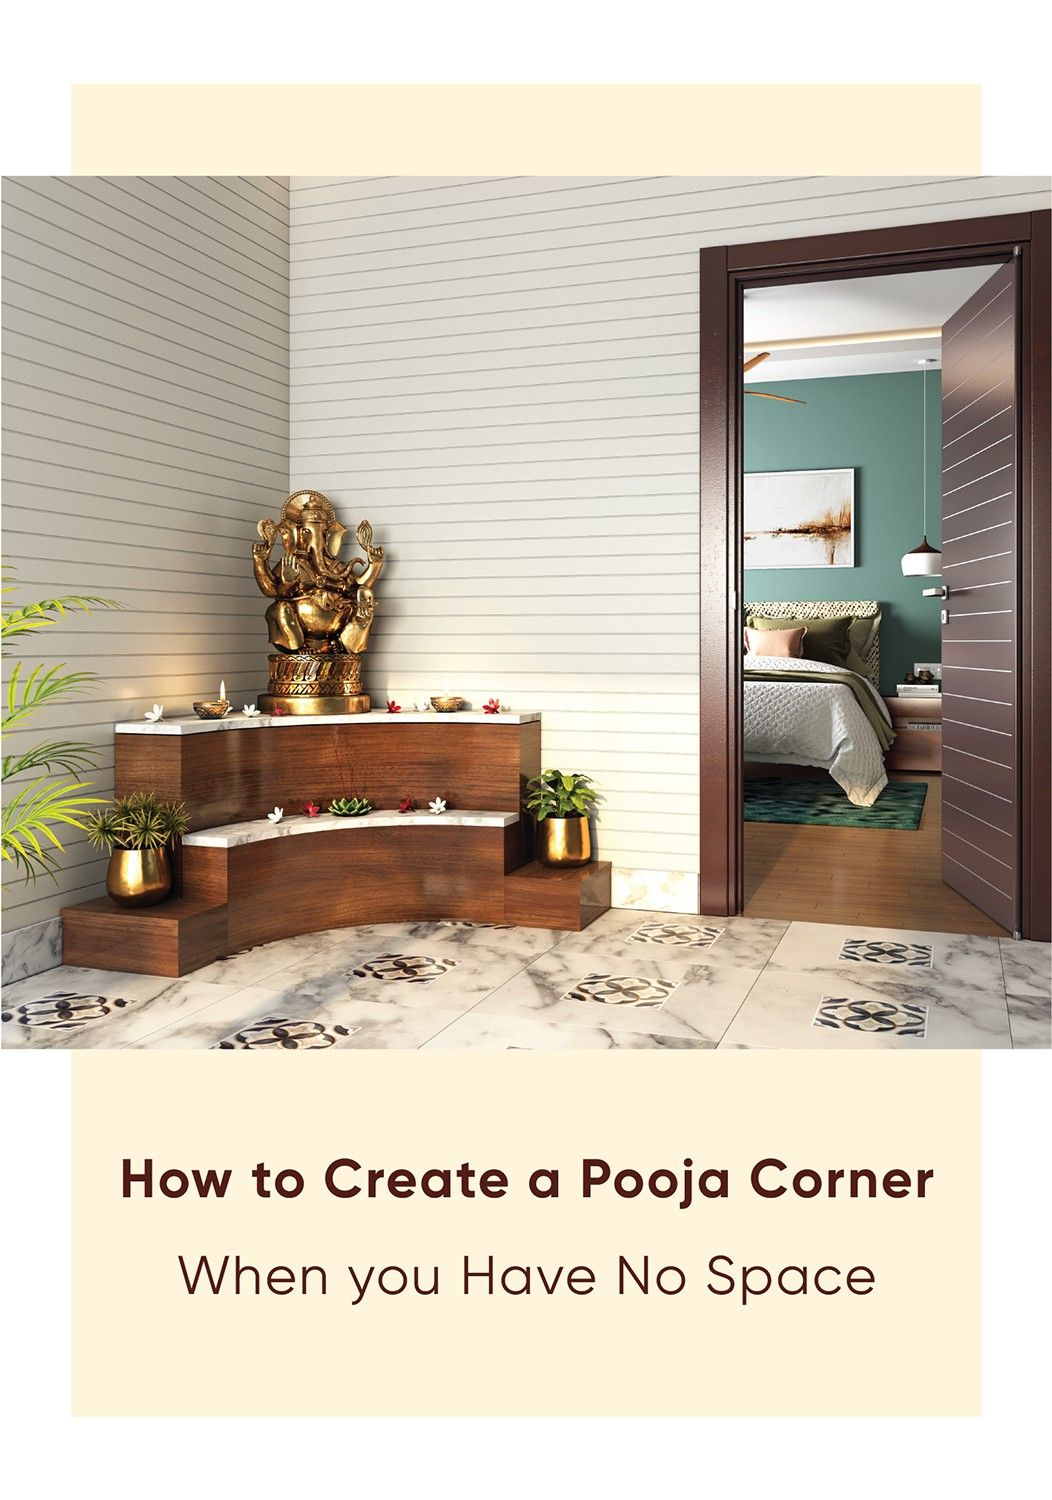 Pooja Room Designs For Flats: No Dedicated Pooja Room? Here Are Expert Solutions In 2020